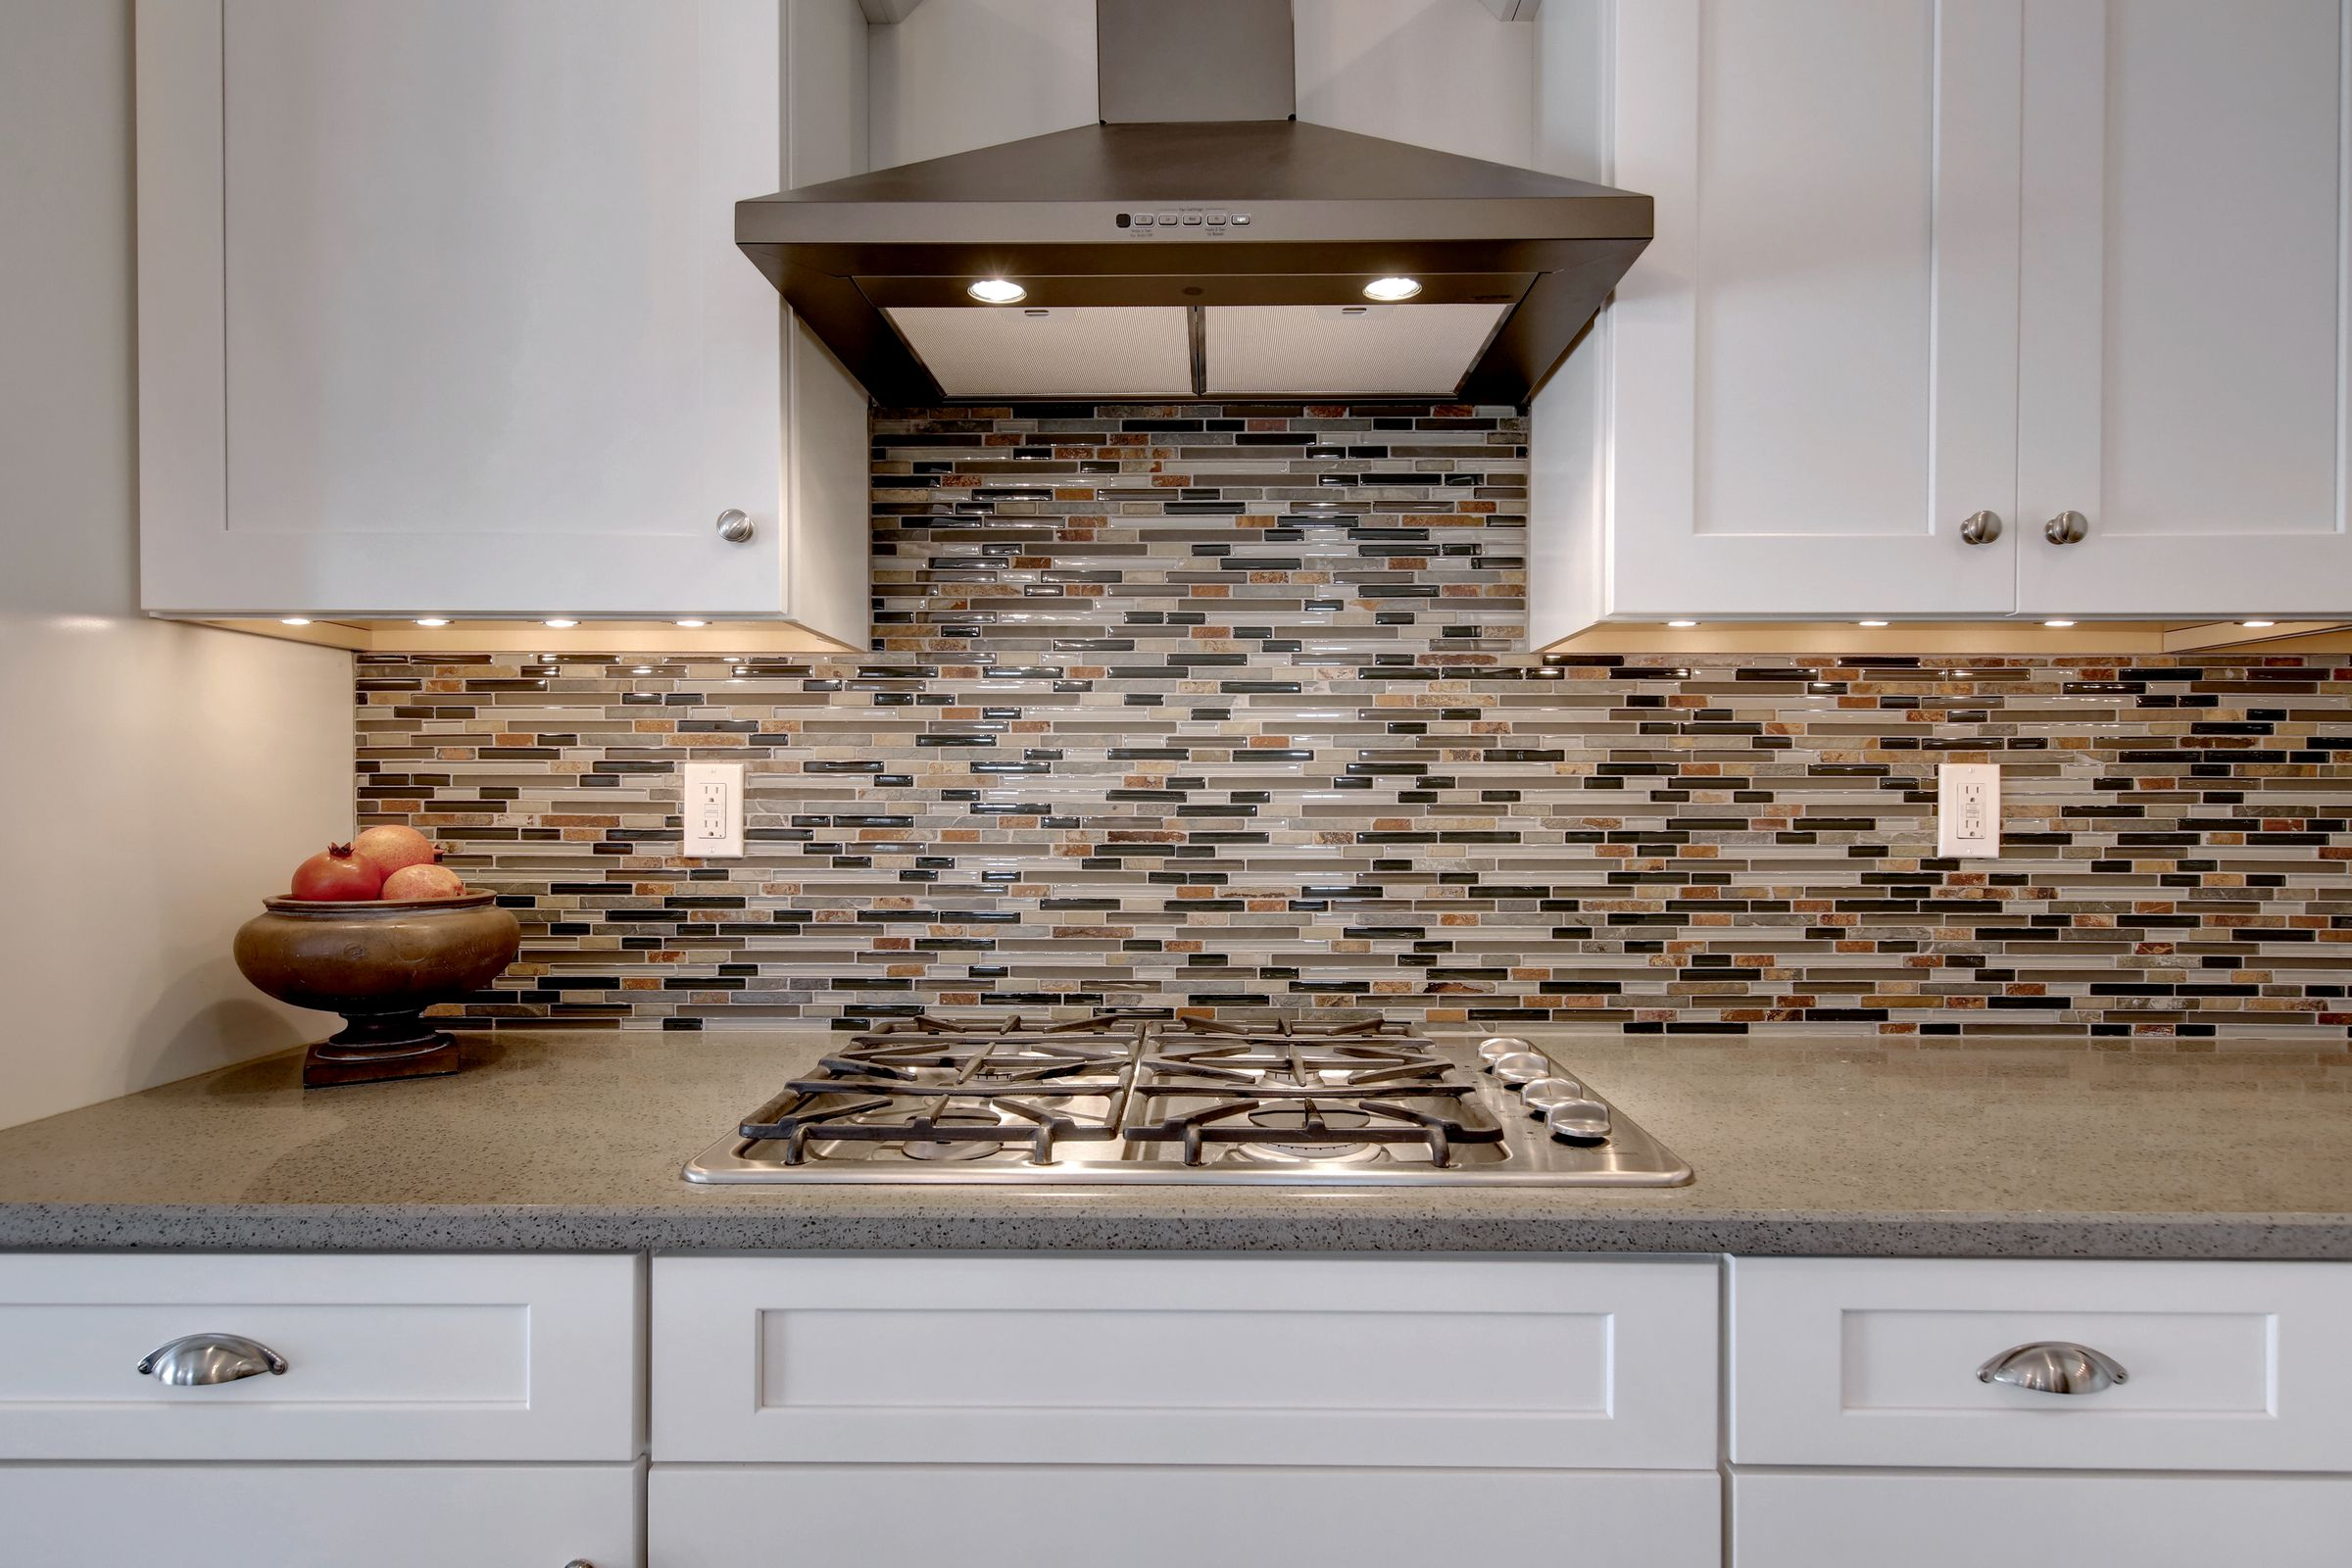 Kitchen featured in the Ethan Bordeaux By Keystone Custom Homes in Washington, MD